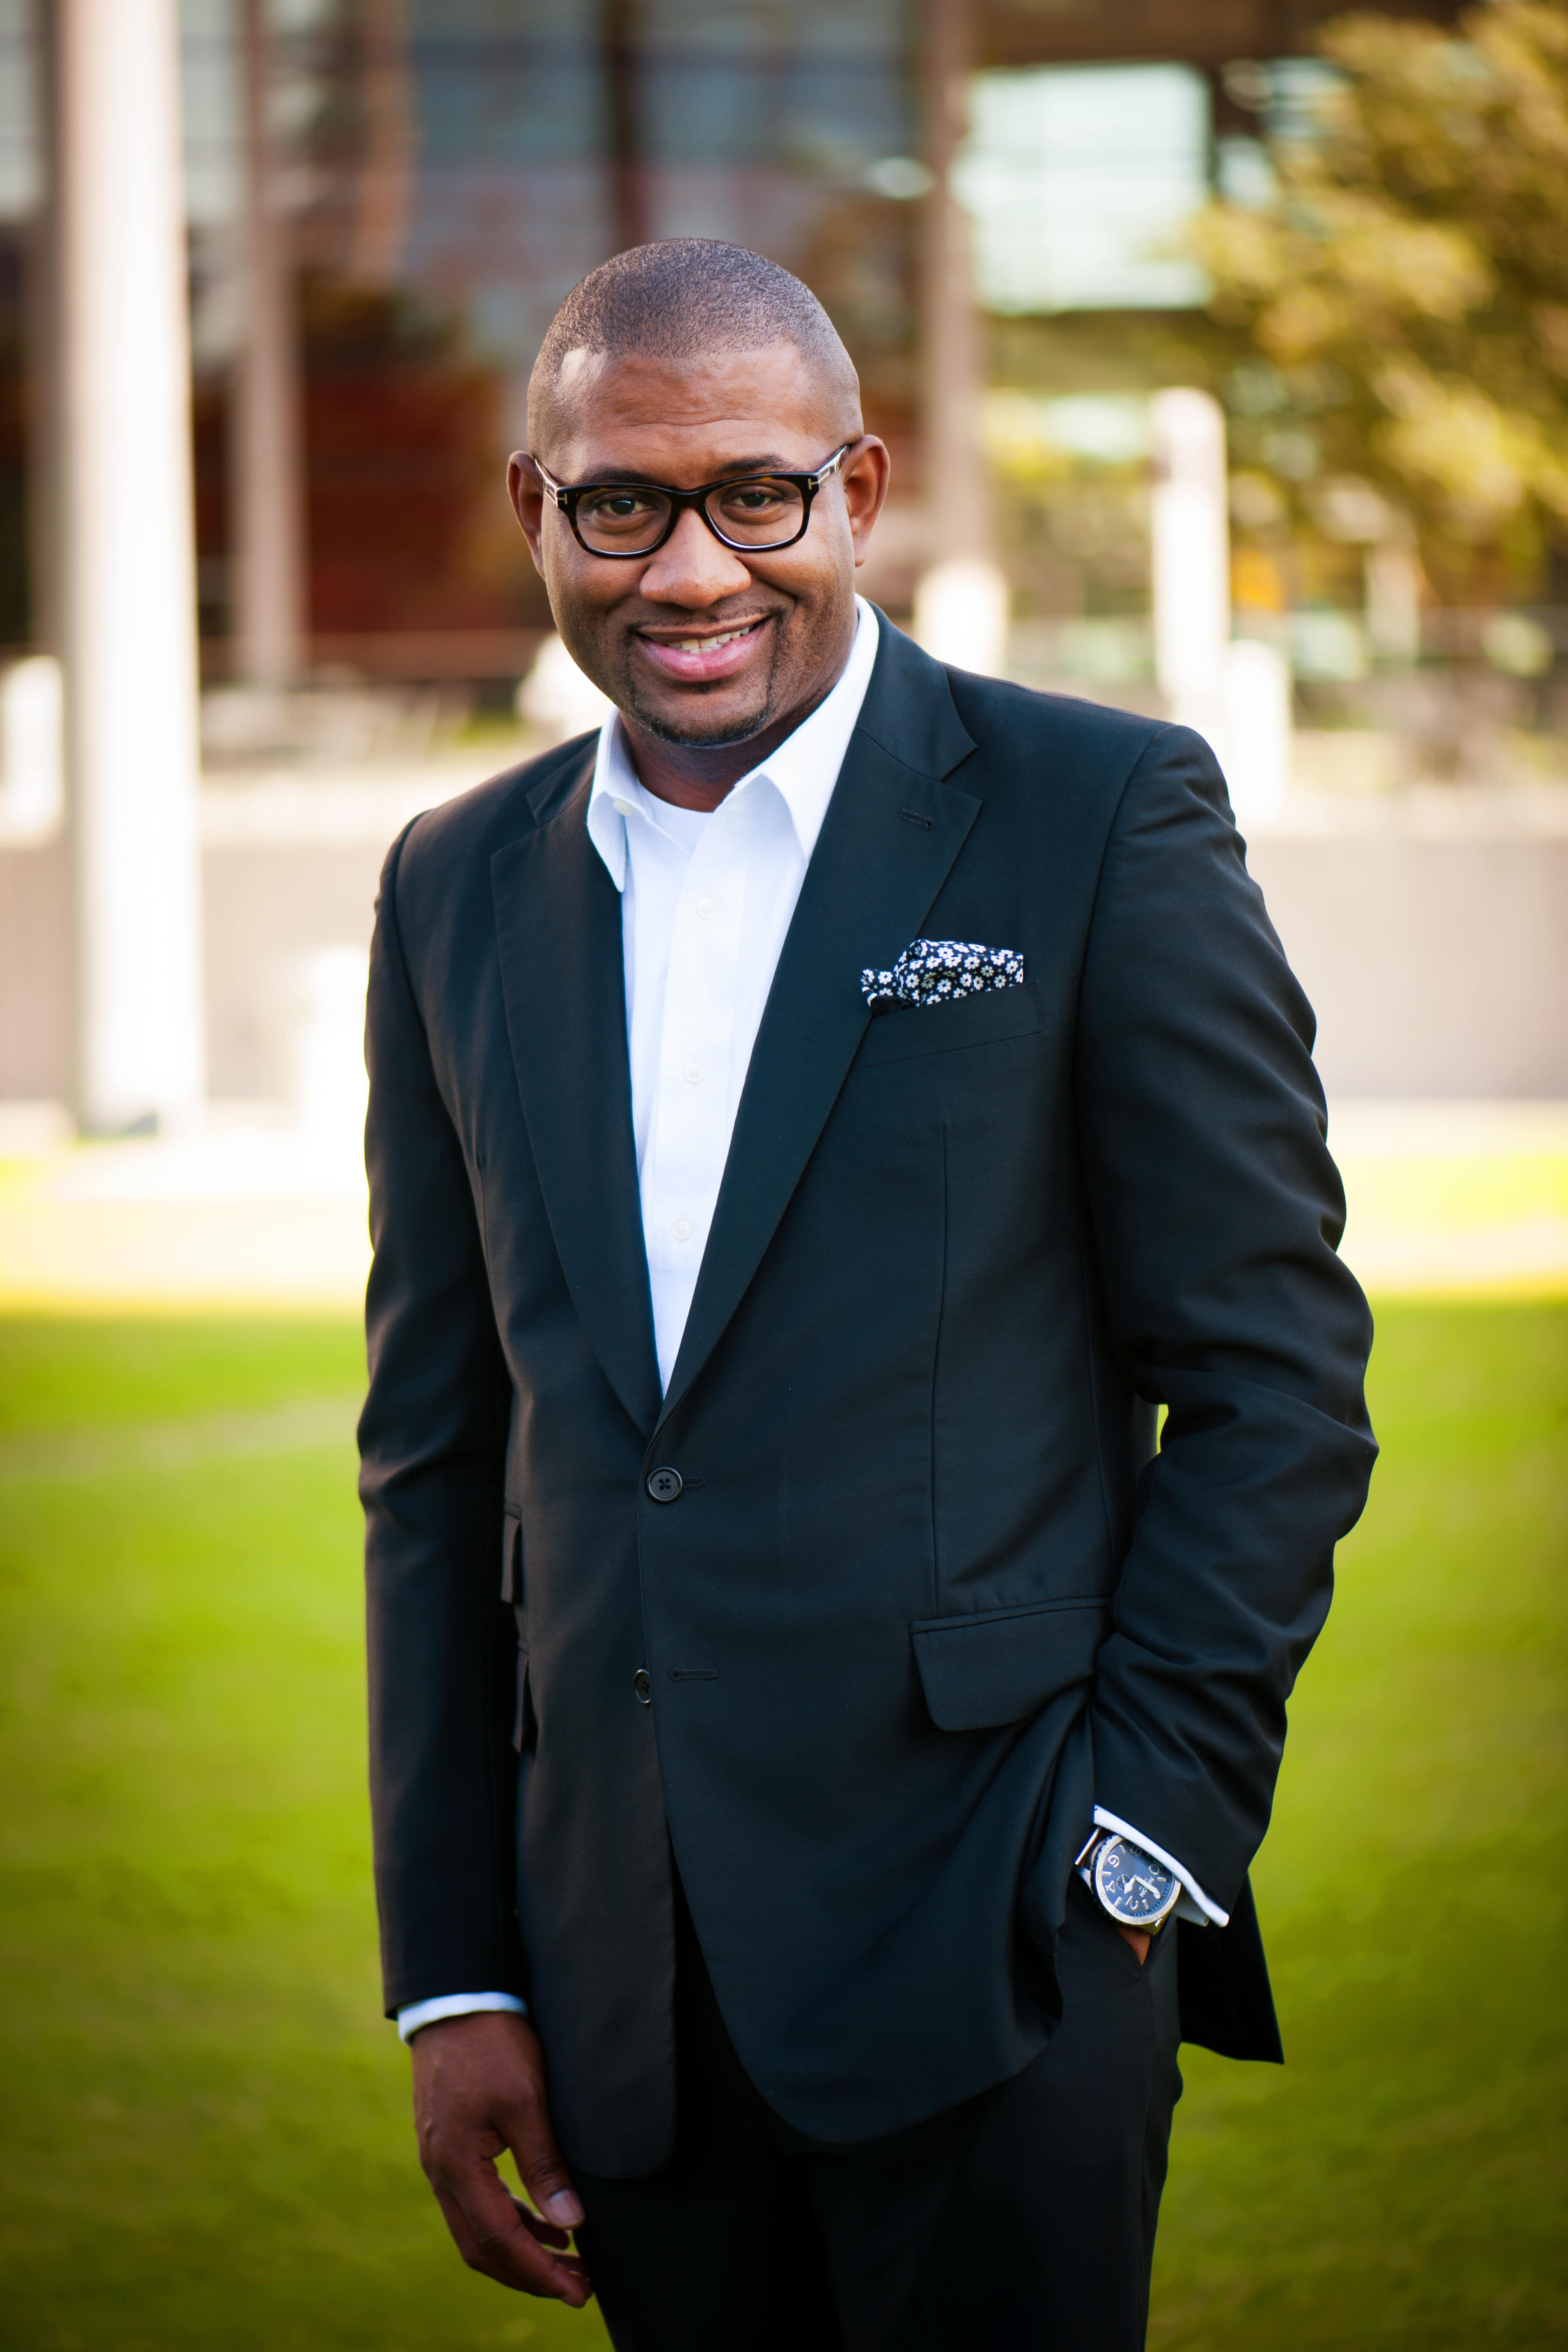 CNLP 196: Bryan Carter on What Makes for Successful Succession, Navigating 300% Church Growth and The Racial Divide in America